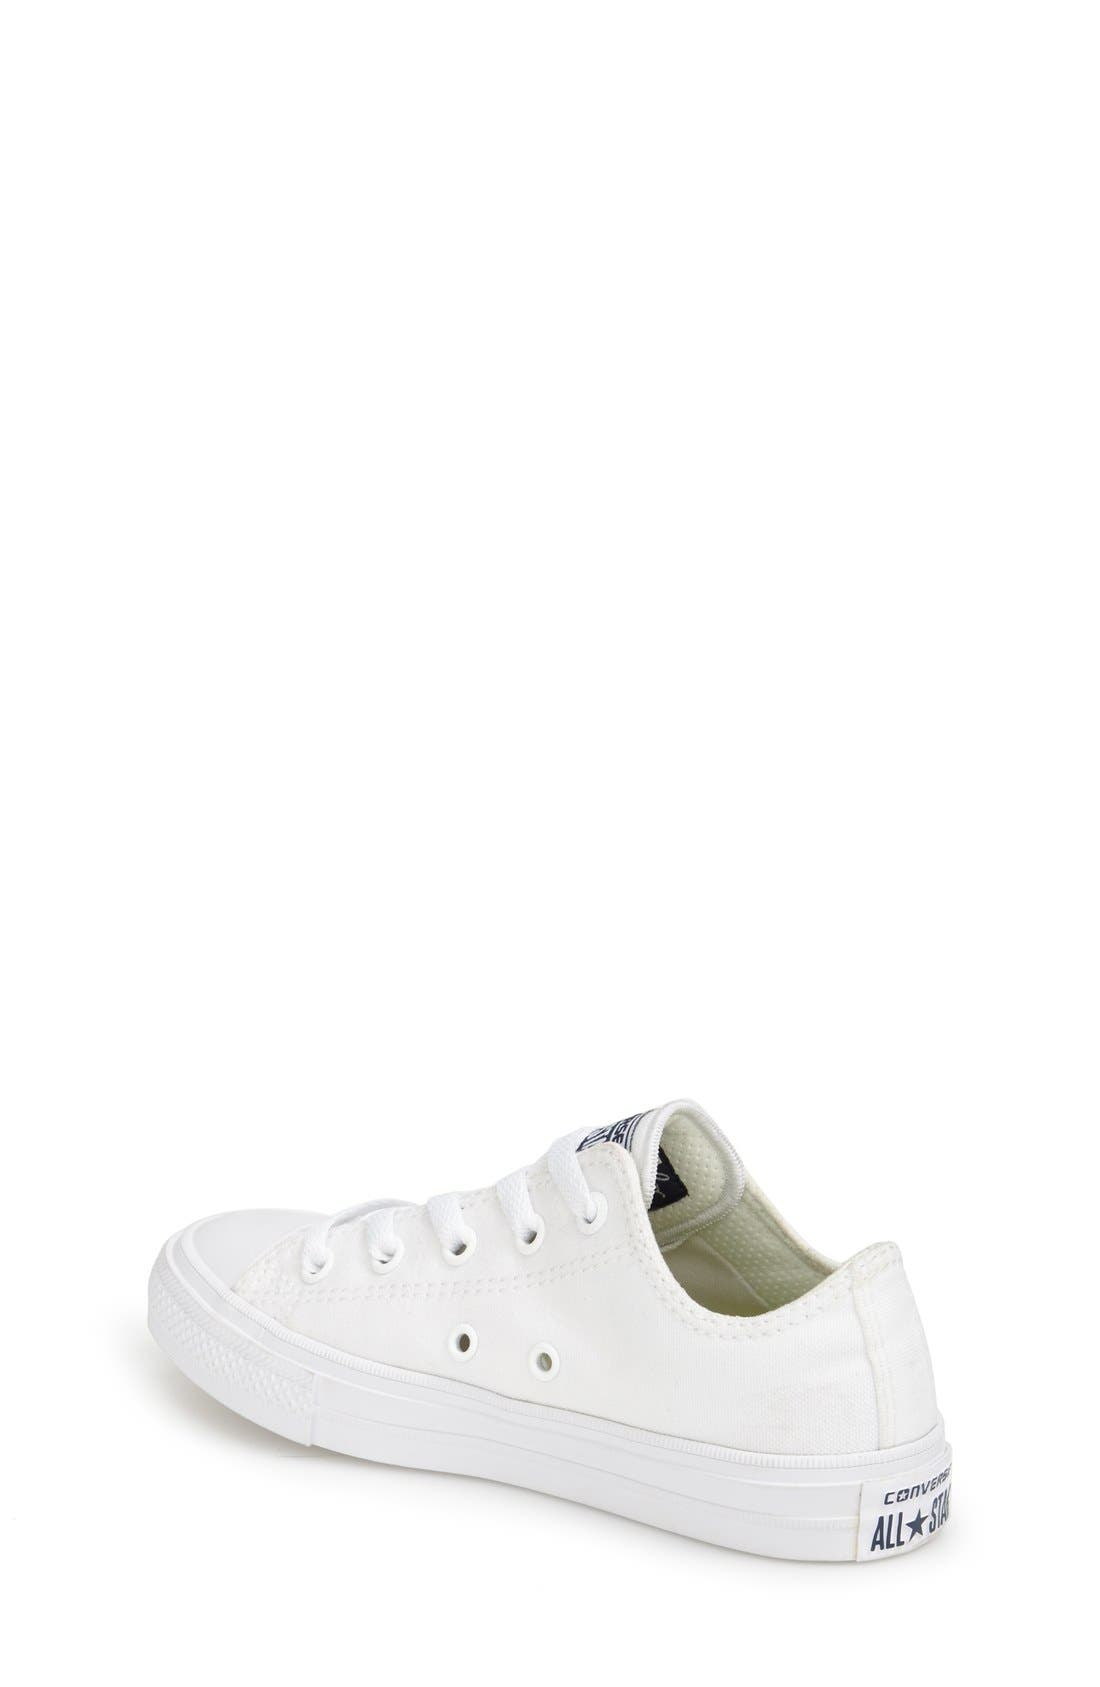 Alternate Image 2  - Converse Chuck Taylor® All Star® II Ox Low Top Sneaker (Walker, Toddler, Little Kid & Big Kid)